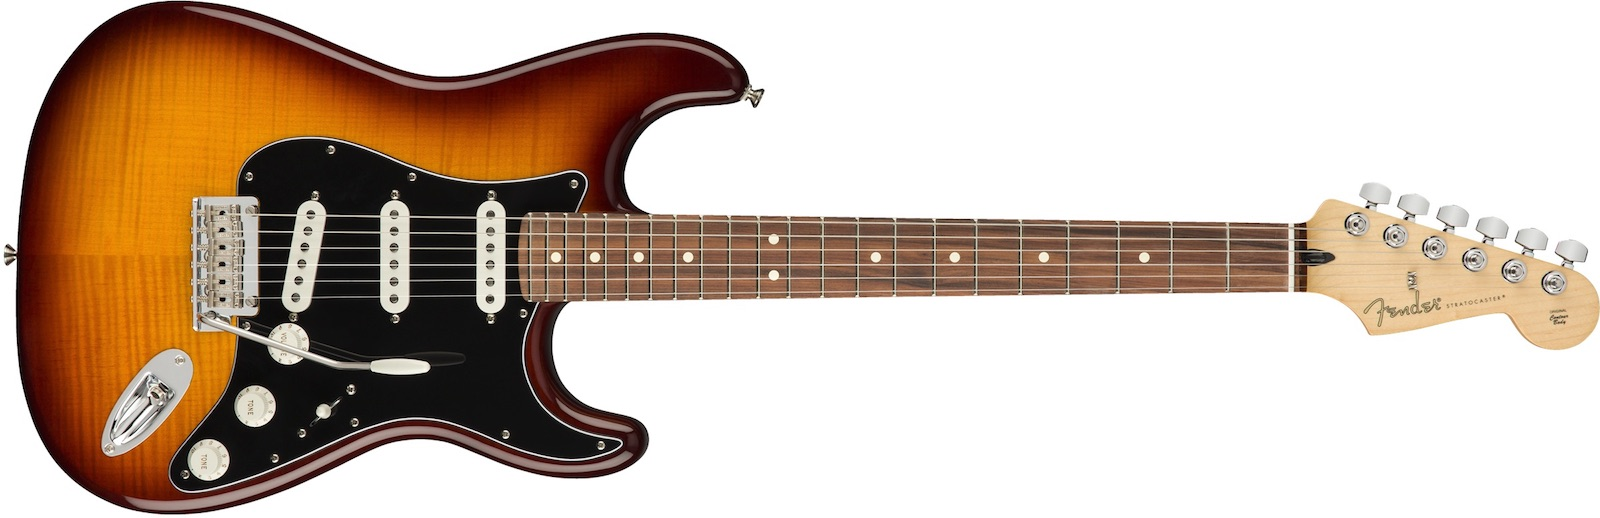 【新品】Fender Player Stratocaster Plus Top Pau Ferro Fingerboard ~Tobacco Sunburst~【お取り寄せ】【送料無料】【池袋店】